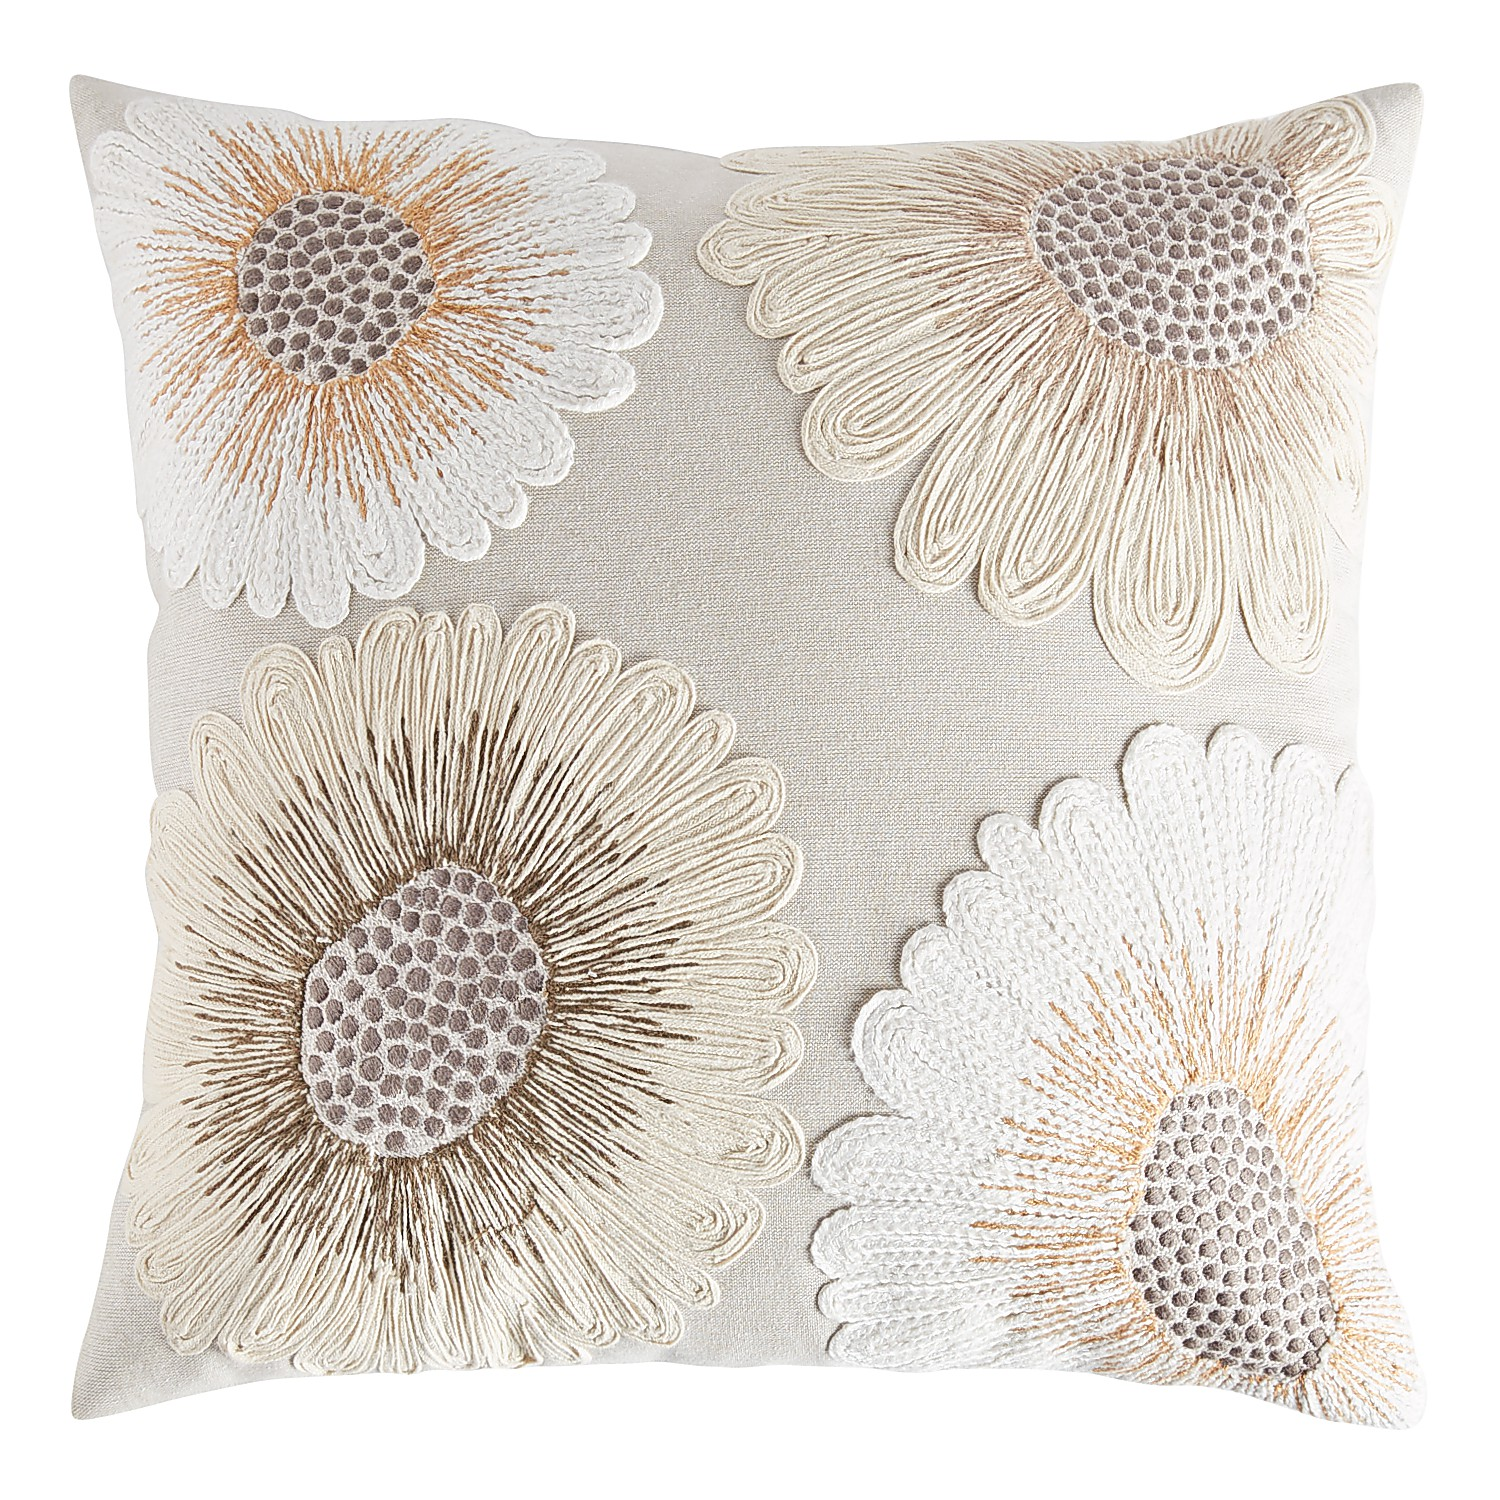 Embellished White & Natural Sunflowers Pillow